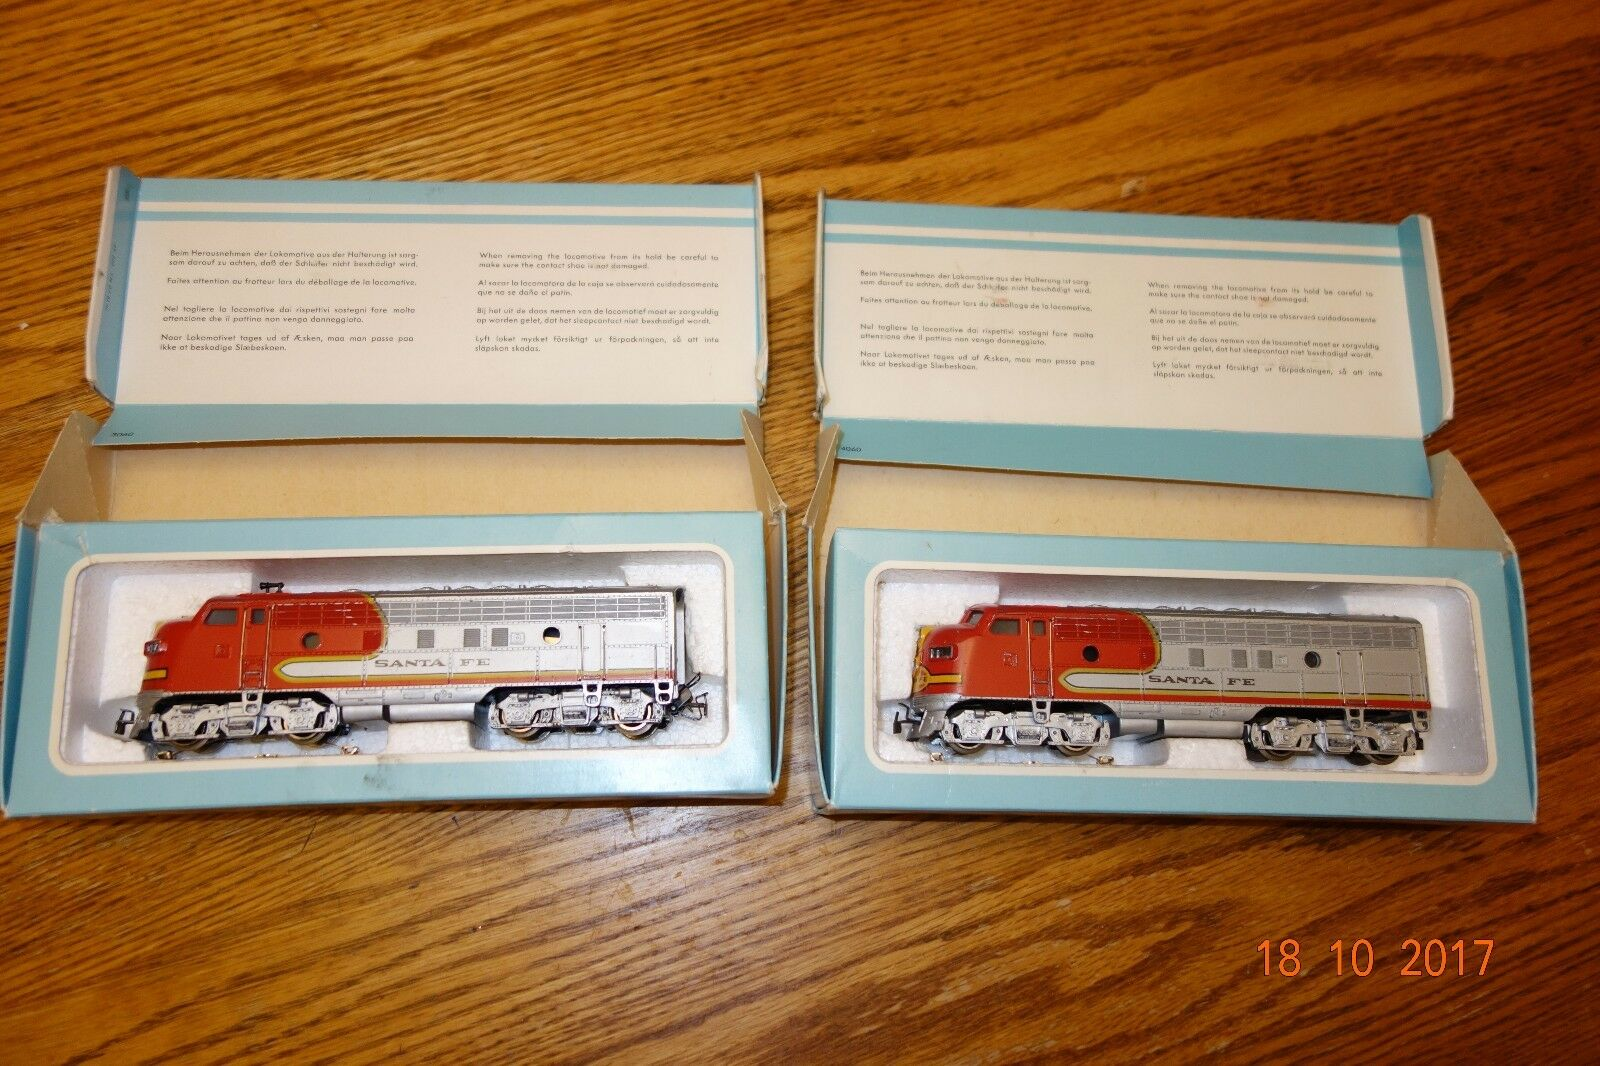 Marklin Sante Fe Diesel Locomotive 3060 and 4060 Very good condition, boxed